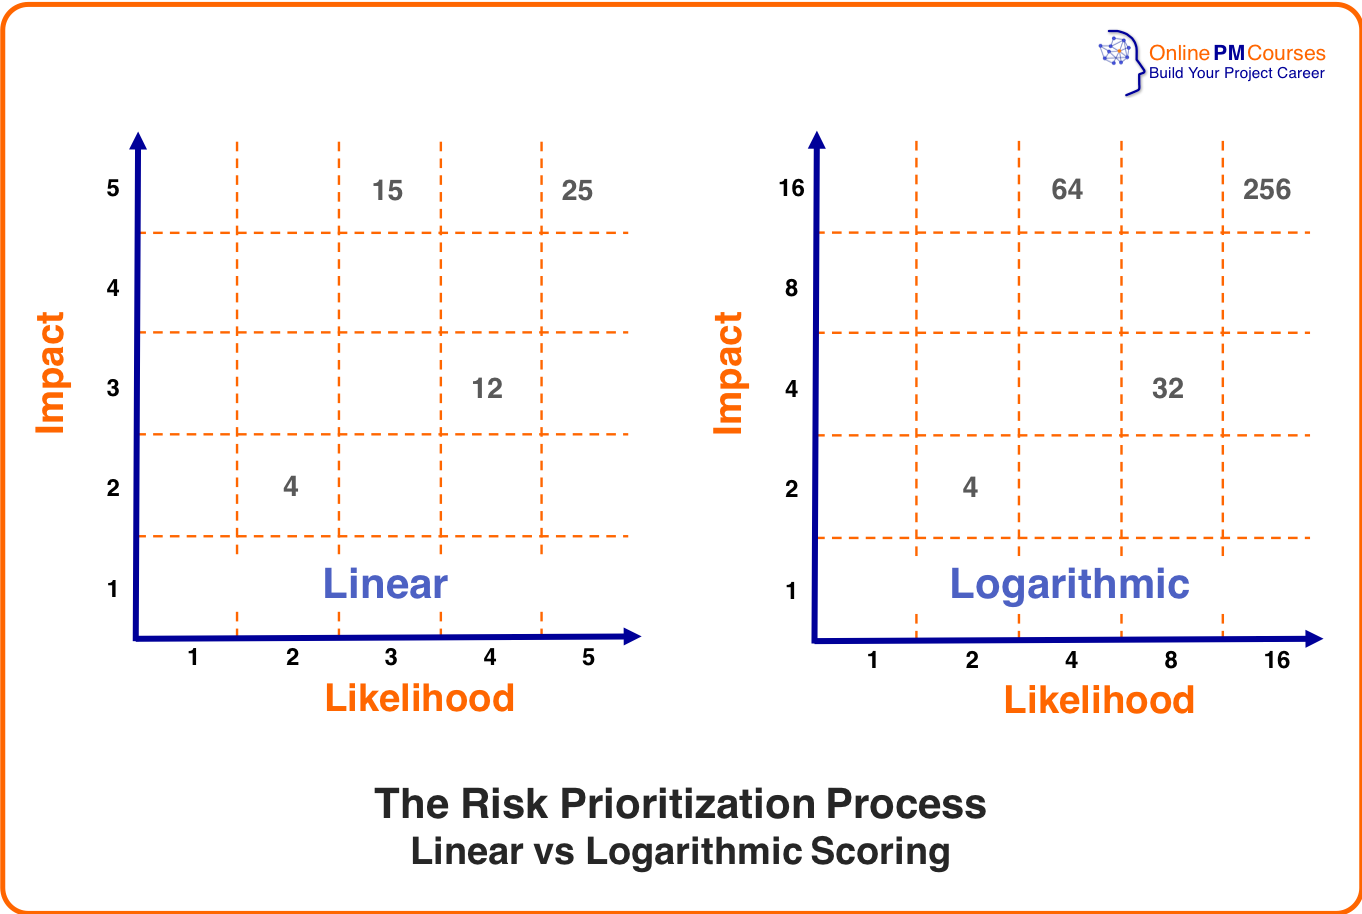 Risk Analysis - Risk Prioritization Process - Linear vs Logarithmis Scoring